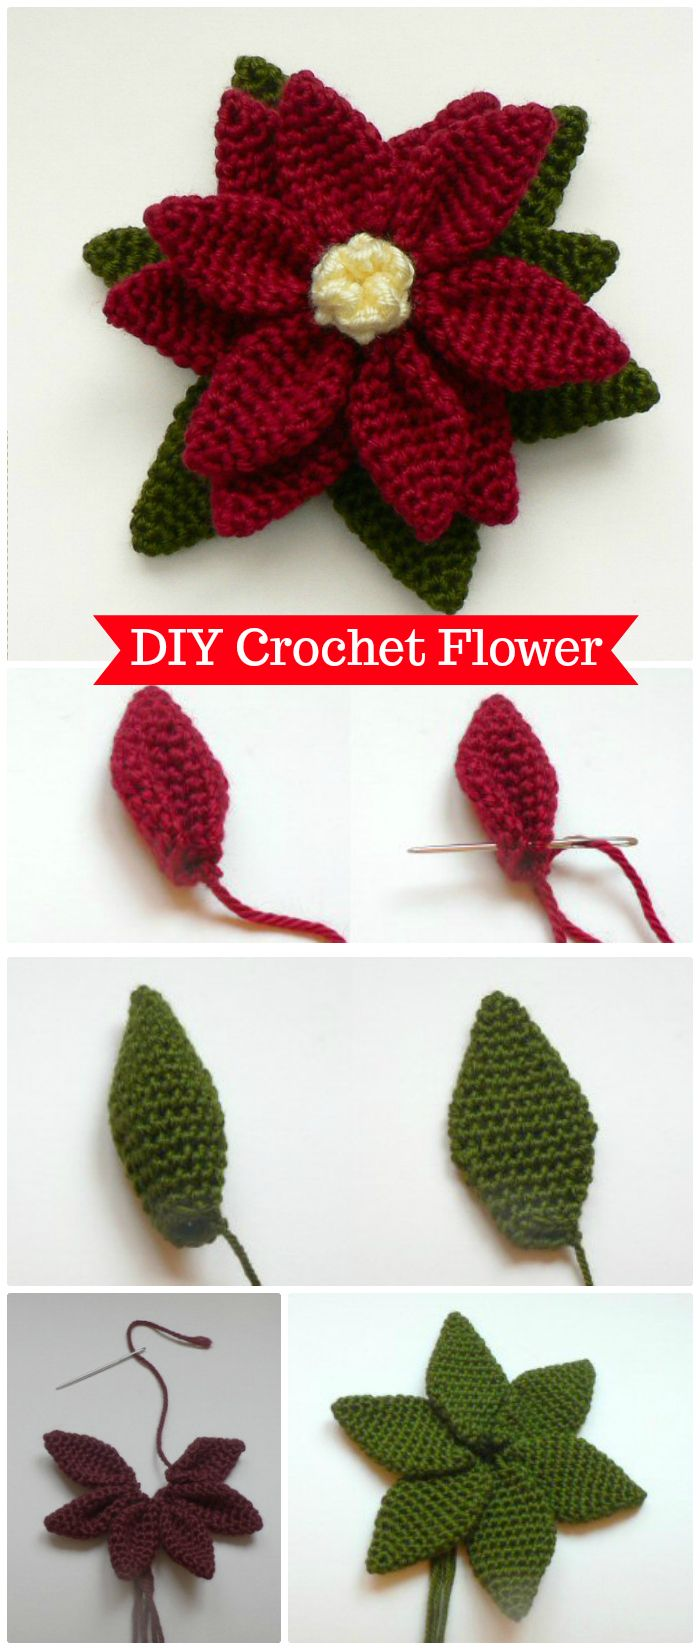 Easy Crochet Flower - crochet flower pattern free | crochet flower pattern | crochet flower pattern free easy